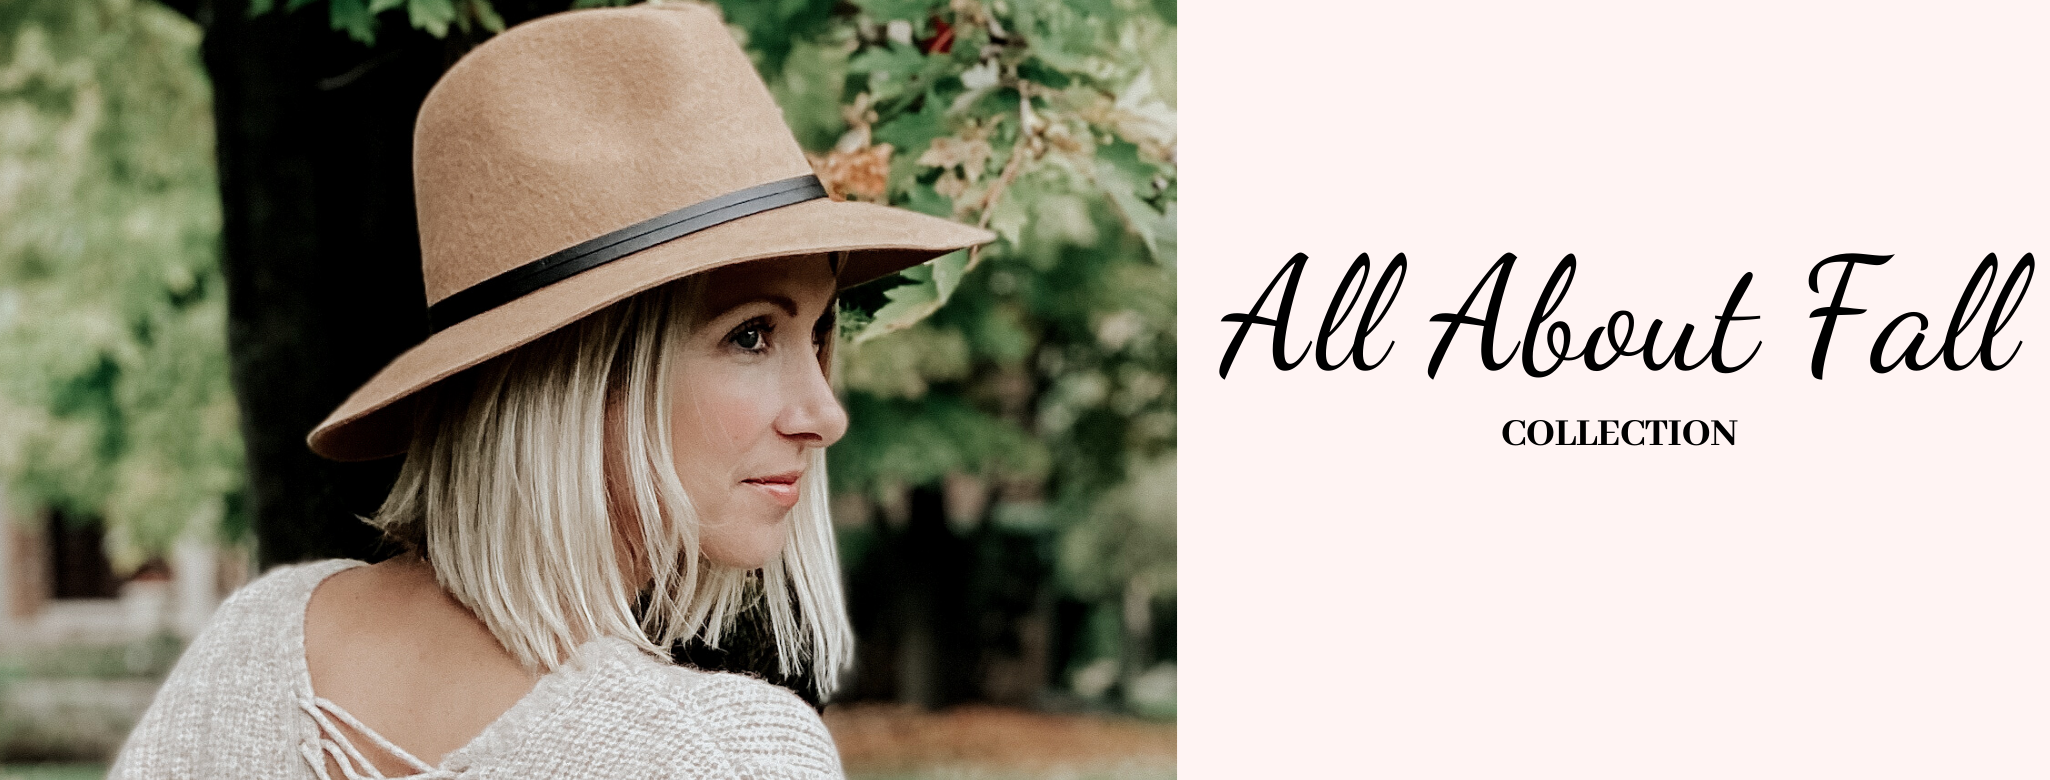 All About Fall Collection